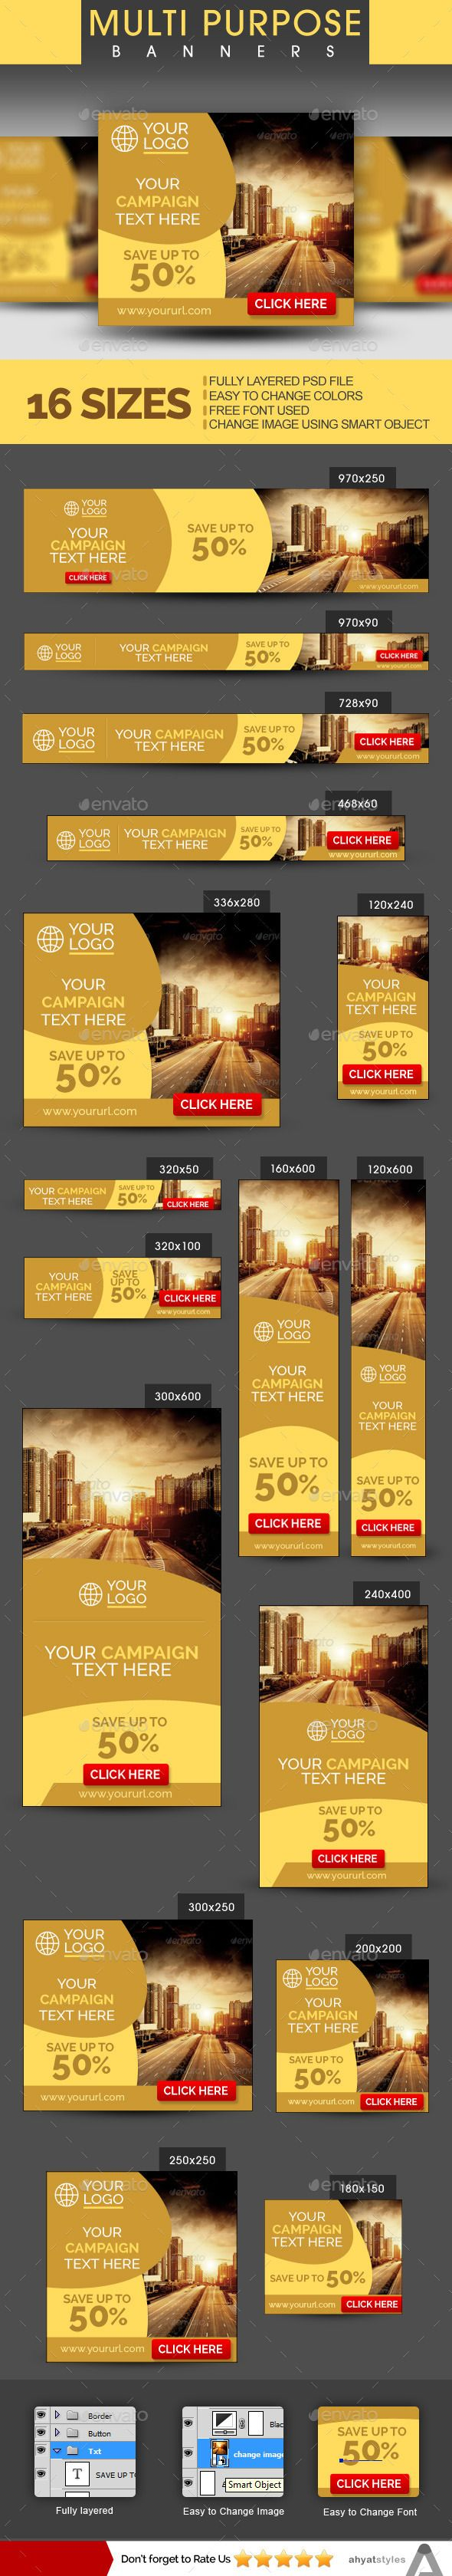 Multipurpose Web Banners - Banners & Ads Web Elements